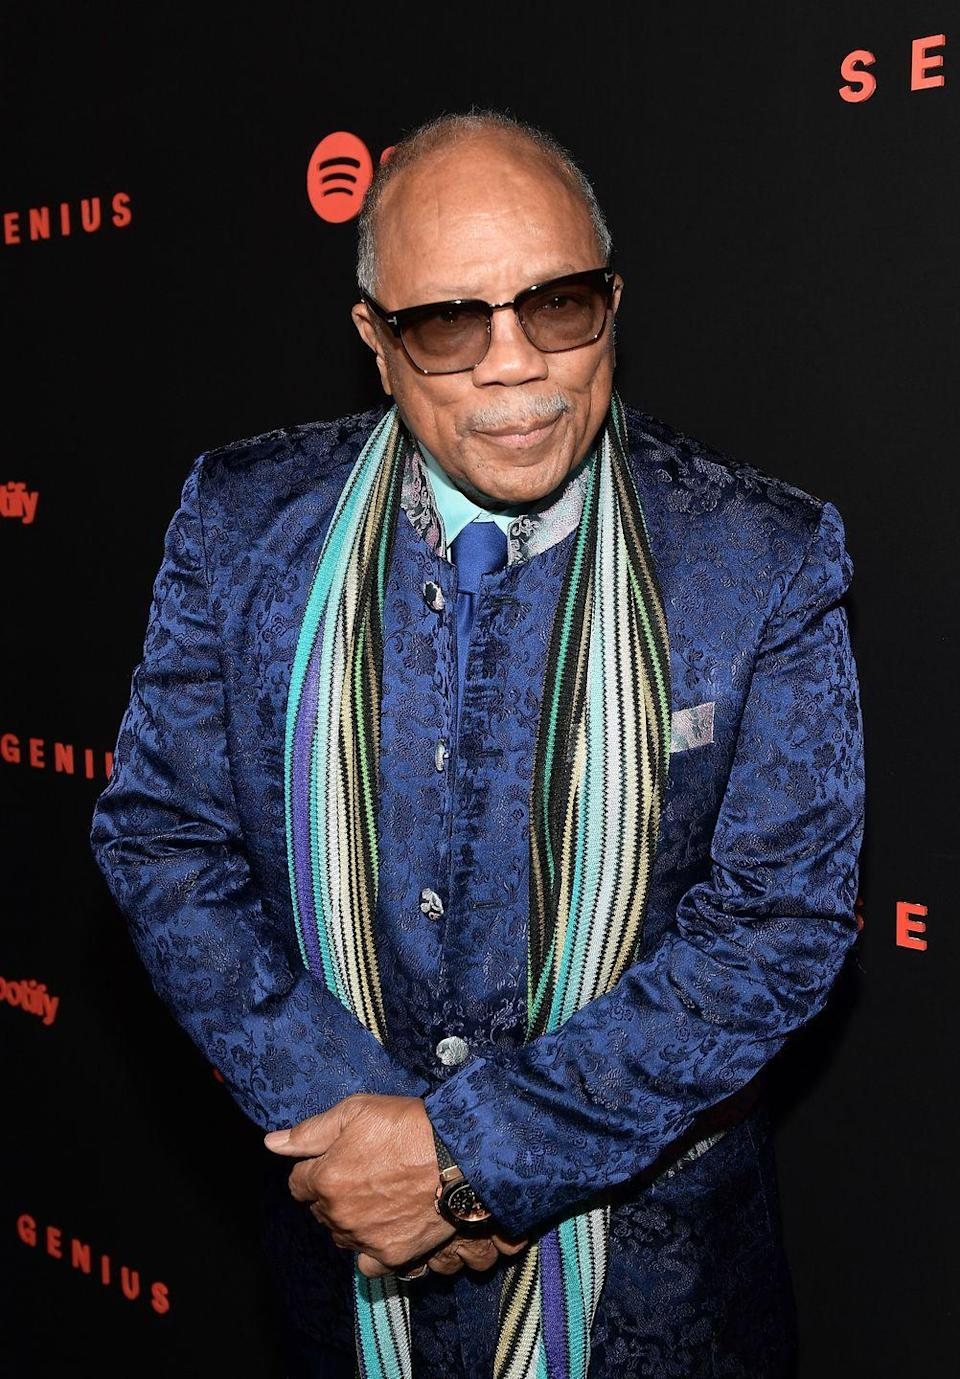 """<p>In the early '50s, aspiring musician Quincy Jones earned a place at Schillinger House (now Berklee College of Music) and <a href=""""https://www.nytimes.com/1997/11/23/nyregion/black-fraternity-makes-helping-a-priority.html"""" rel=""""nofollow noopener"""" target=""""_blank"""" data-ylk=""""slk:joined the Alpha Phi Alpha fraternity"""" class=""""link rapid-noclick-resp"""">joined the Alpha Phi Alpha fraternity</a>. But he <a href=""""https://www.britannica.com/biography/Quincy-Jones"""" rel=""""nofollow noopener"""" target=""""_blank"""" data-ylk=""""slk:dropped out soon after to tour with Lionel Hampton"""" class=""""link rapid-noclick-resp"""">dropped out soon after to tour with Lionel Hampton</a>. The risky move proved successful and kick started his career. </p>"""